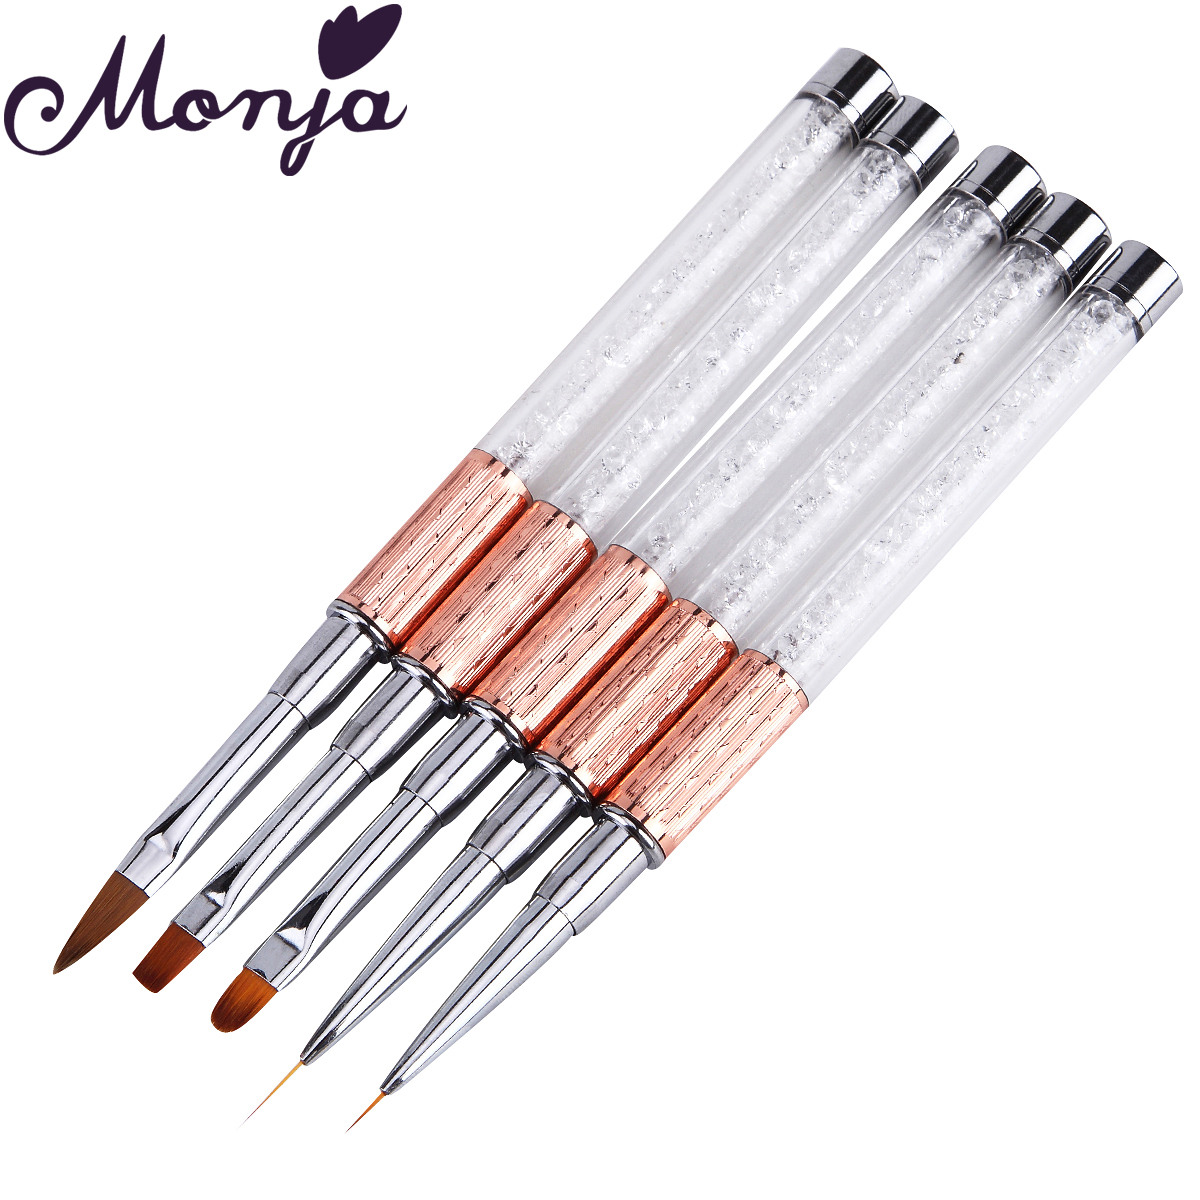 Monja Nail Art Brush Made Of Acrylic Rhinestone Handle Material For Nail Liner Brush Tool 6